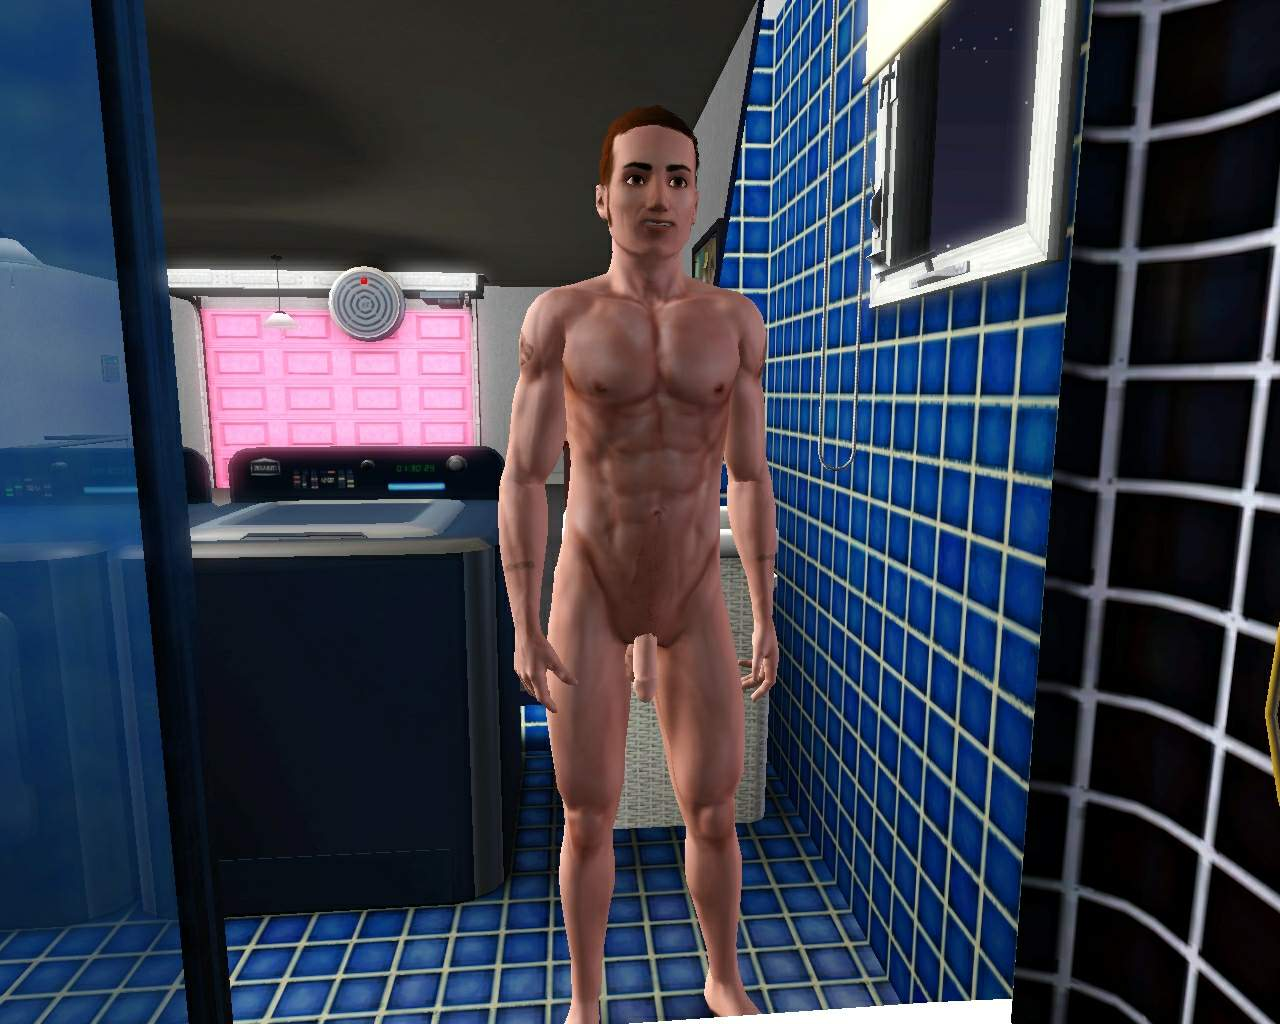 Sims3 nude legal patch porn scenes